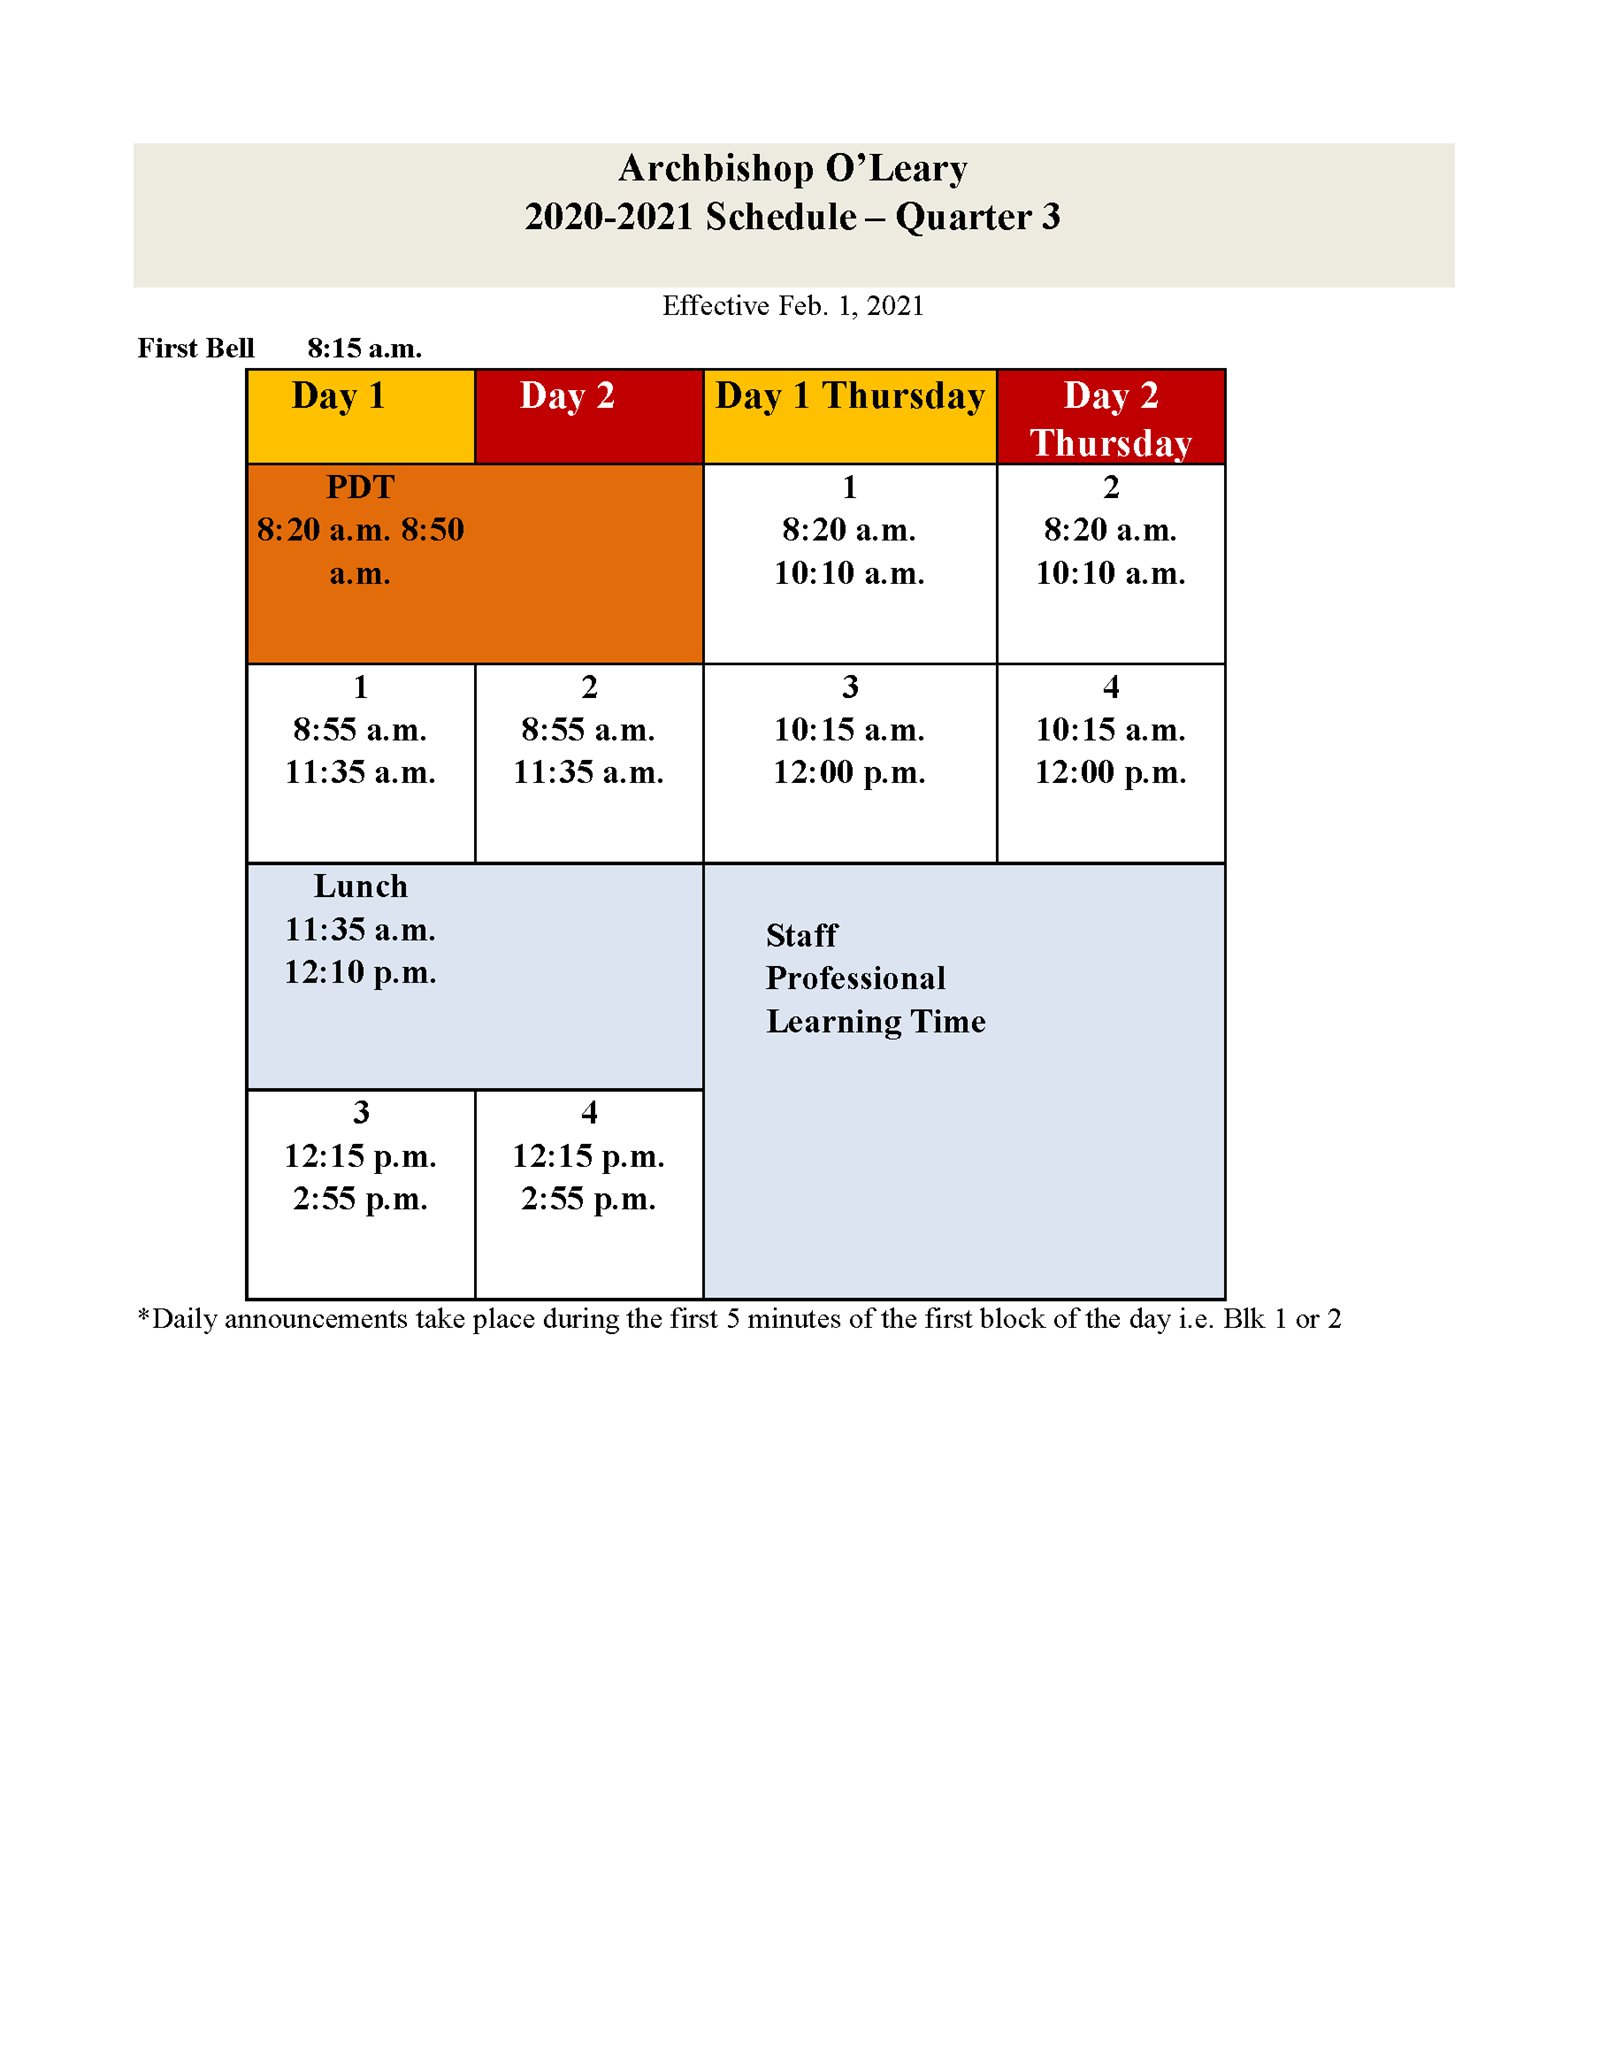 dailySchedule_Page_3.png